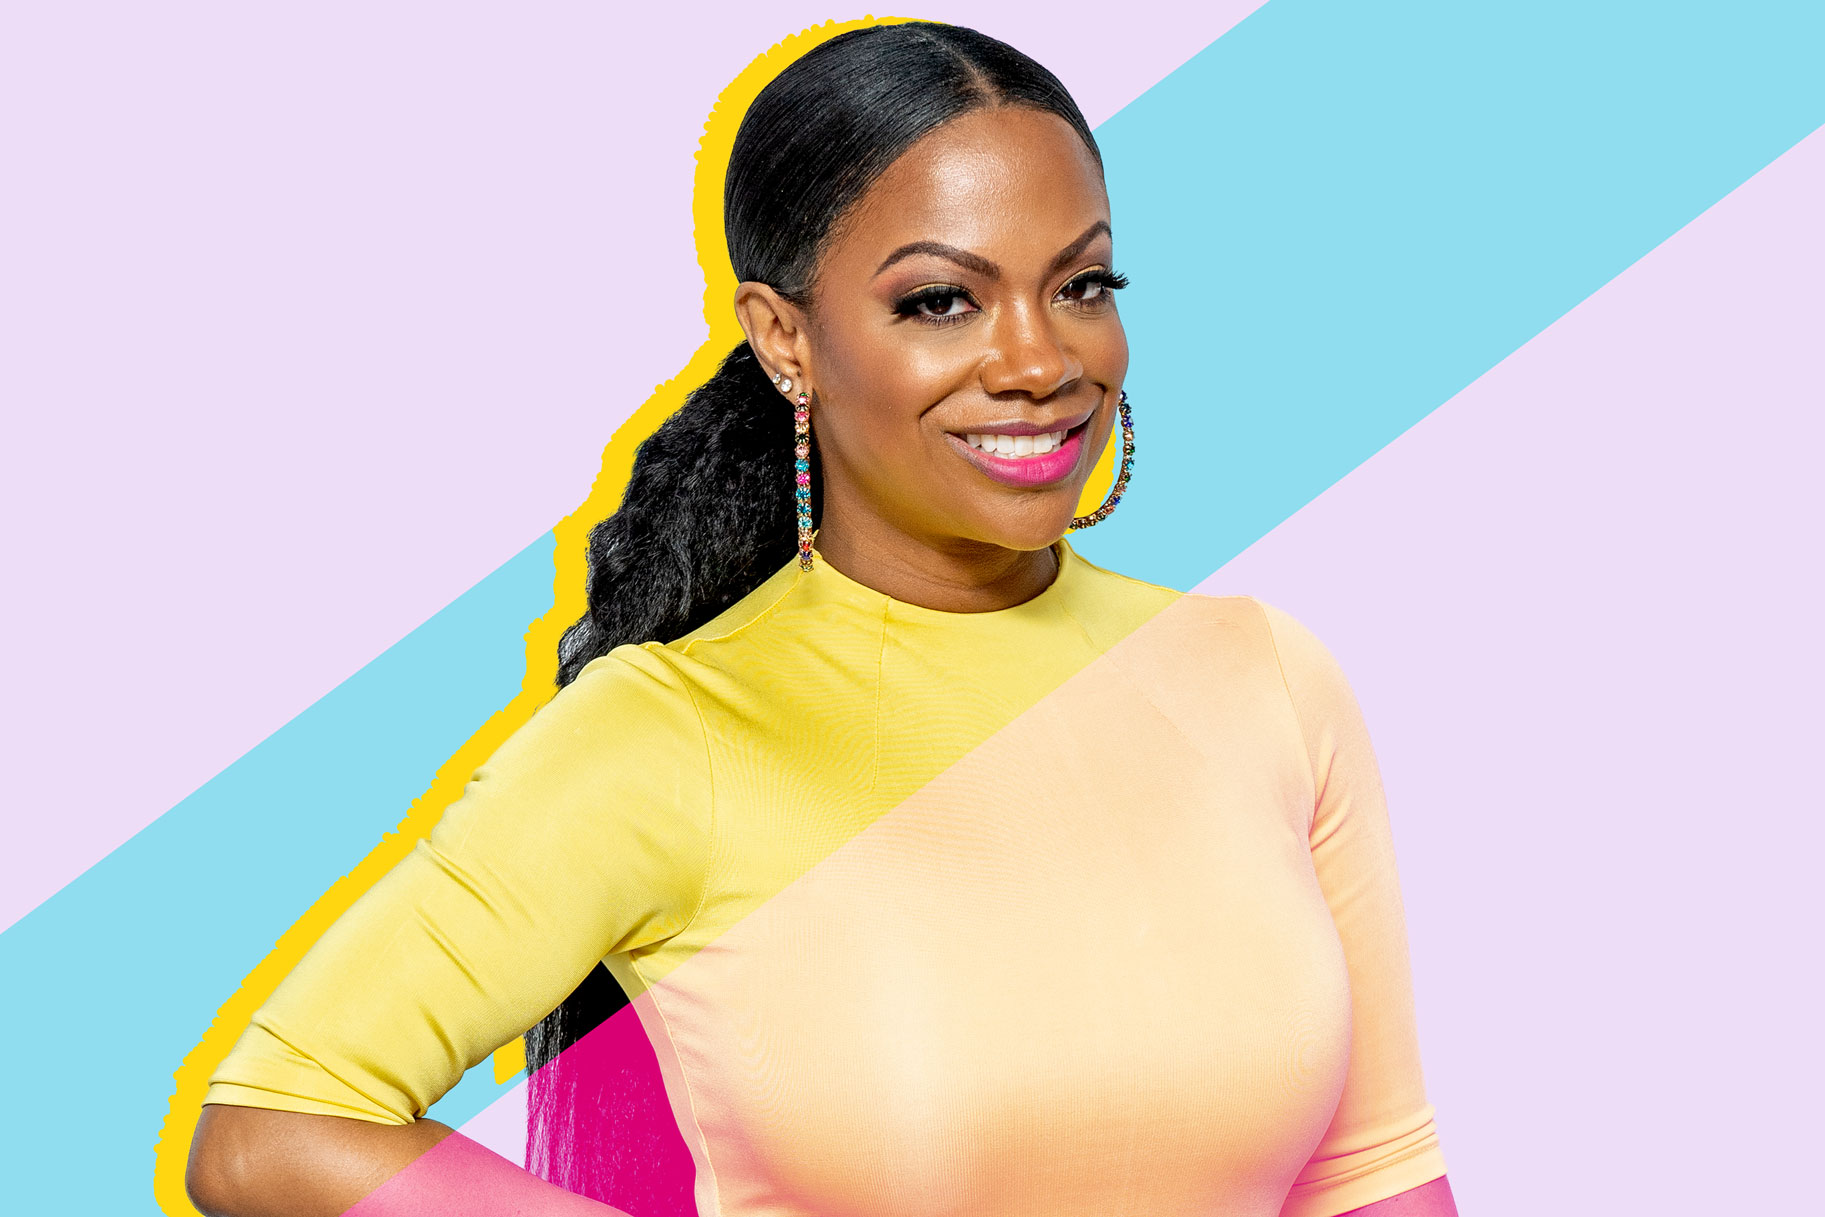 Kandi Burruss Is Proud To Announce Fans That The First Week Of Her Dungeon Tour Went Amazing - Check Out Her Life Update